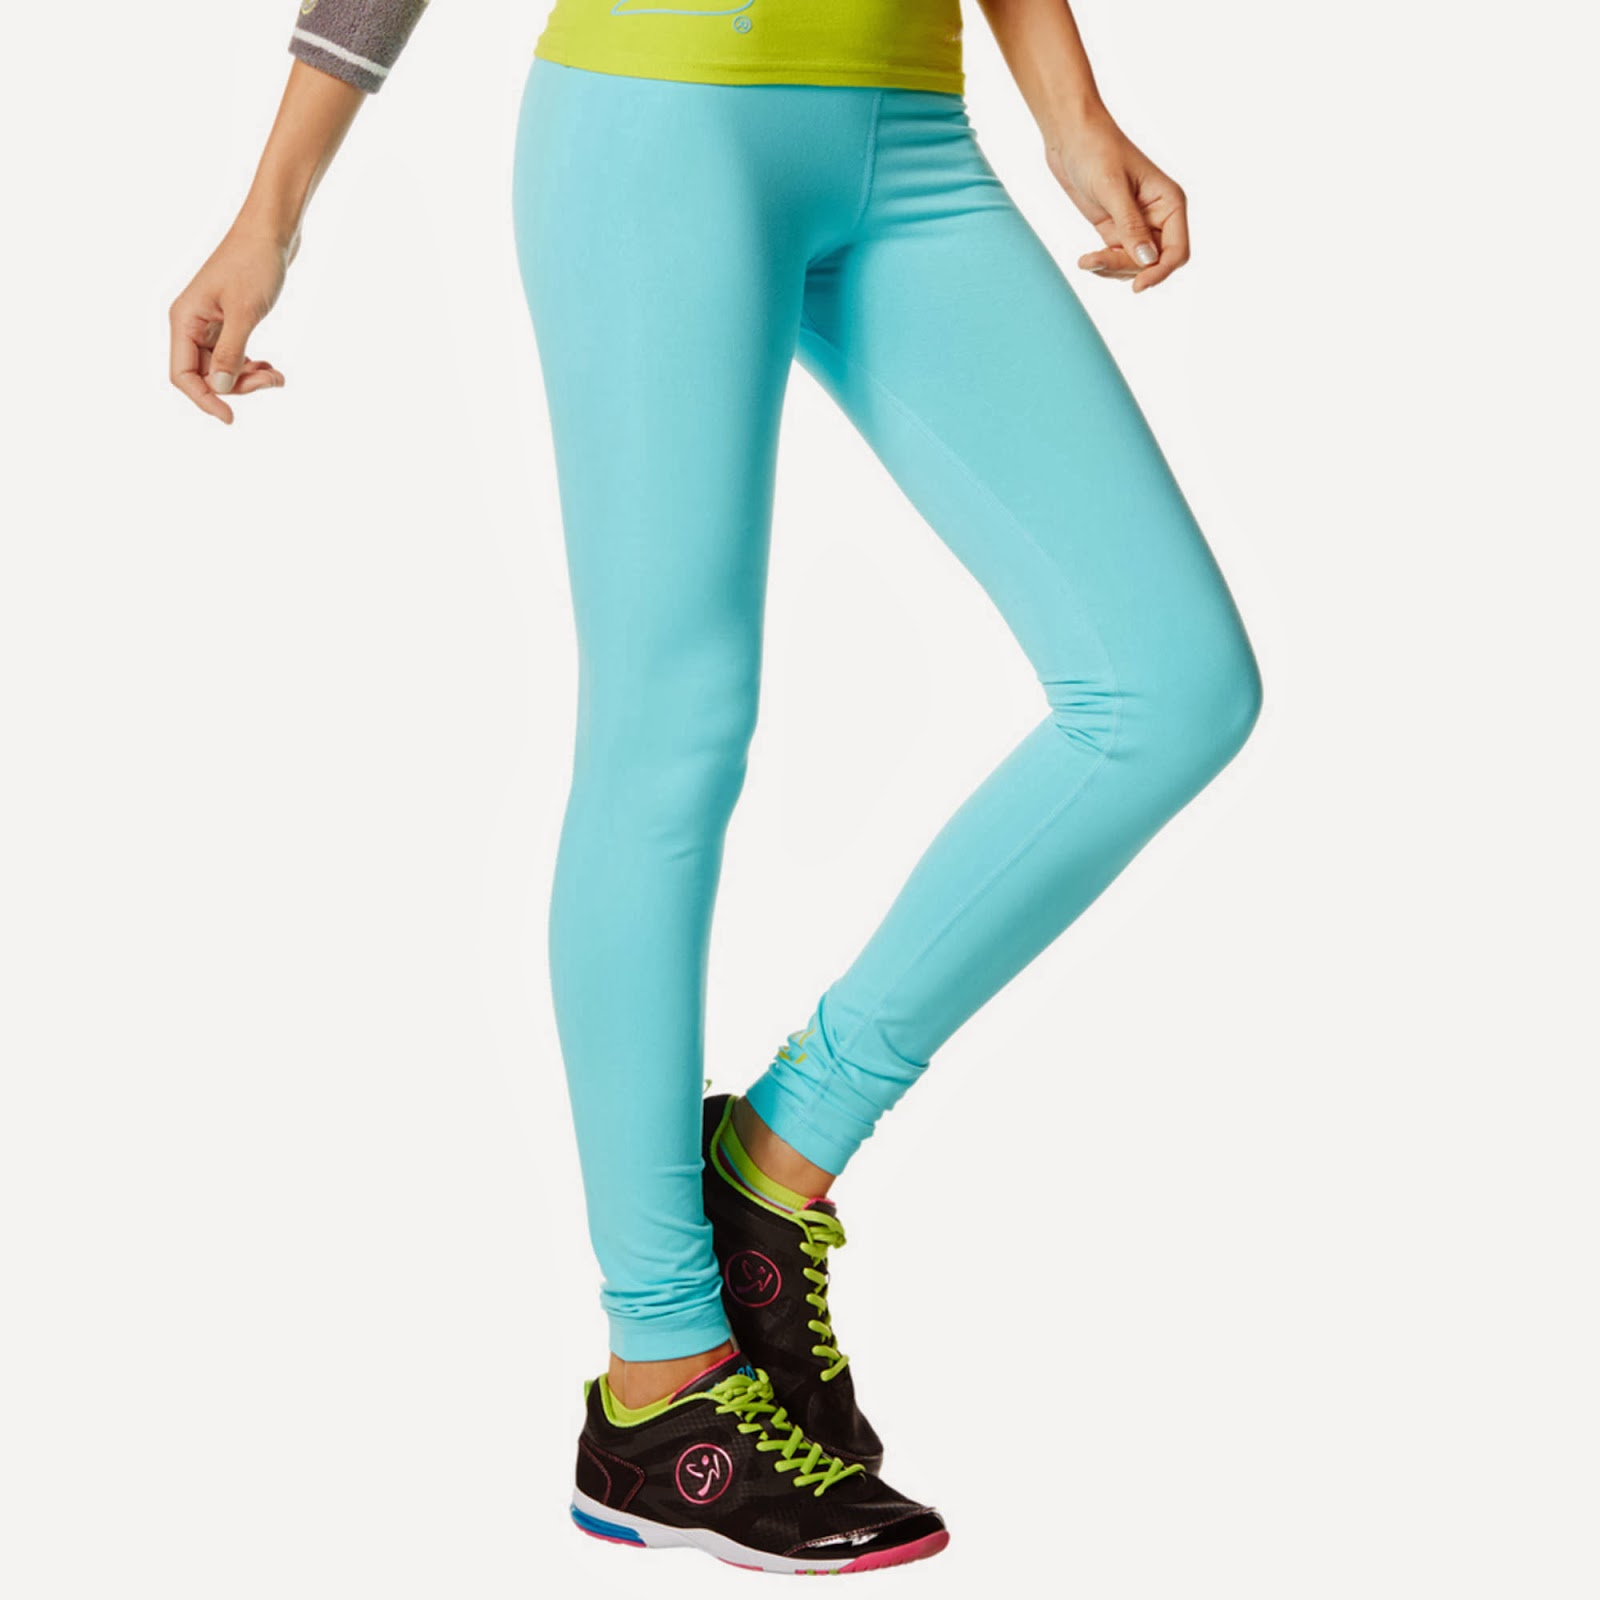 http://www.zumba.com/en-US/store-zin/US/product/love-me-long-legging?color=Deep+Blue+Sea#show_menu